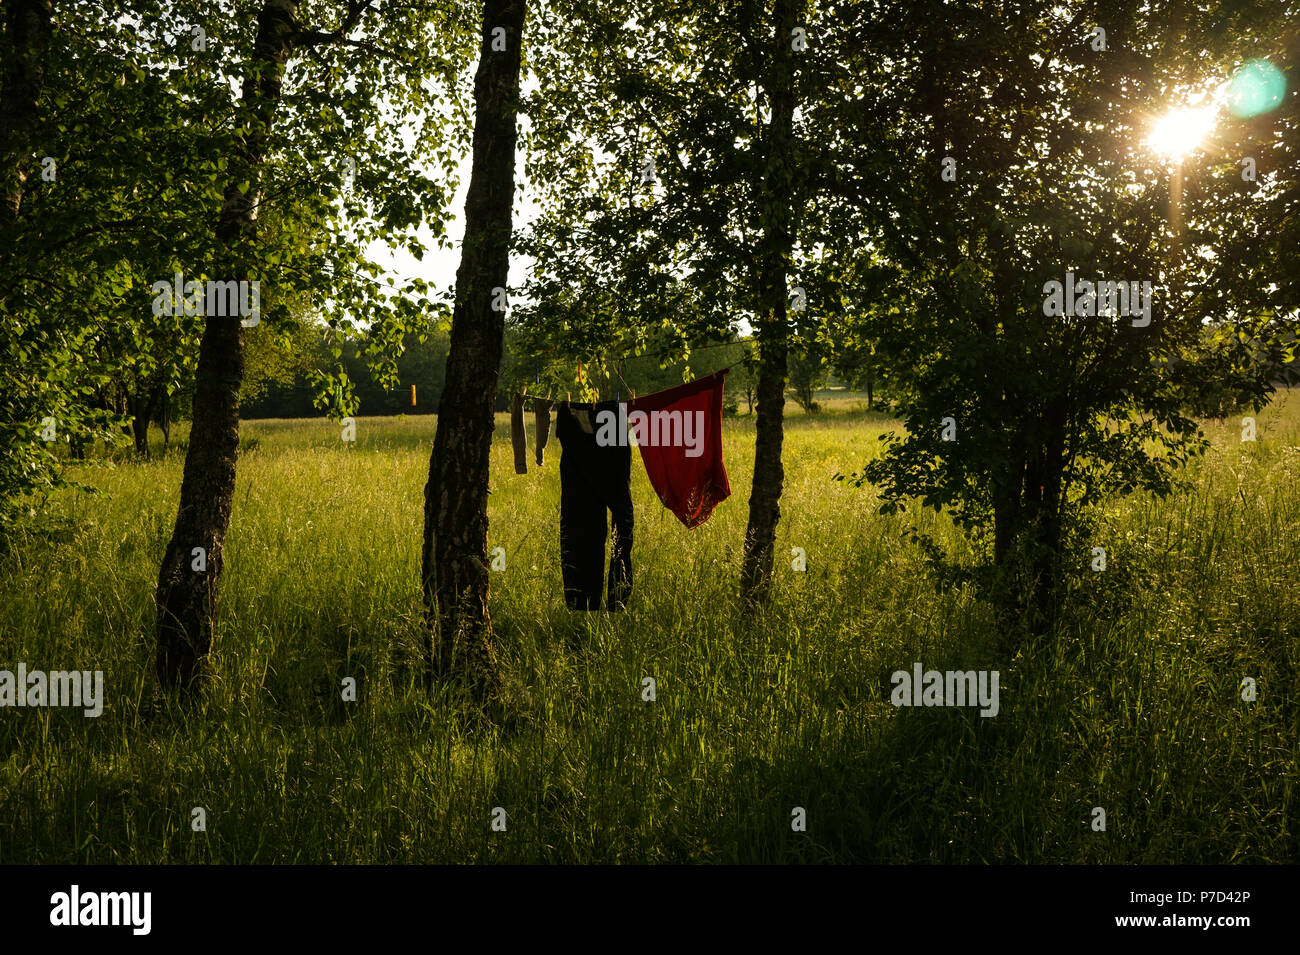 Western Piedmont, Northern Italy: Rural landscape - Stock Image